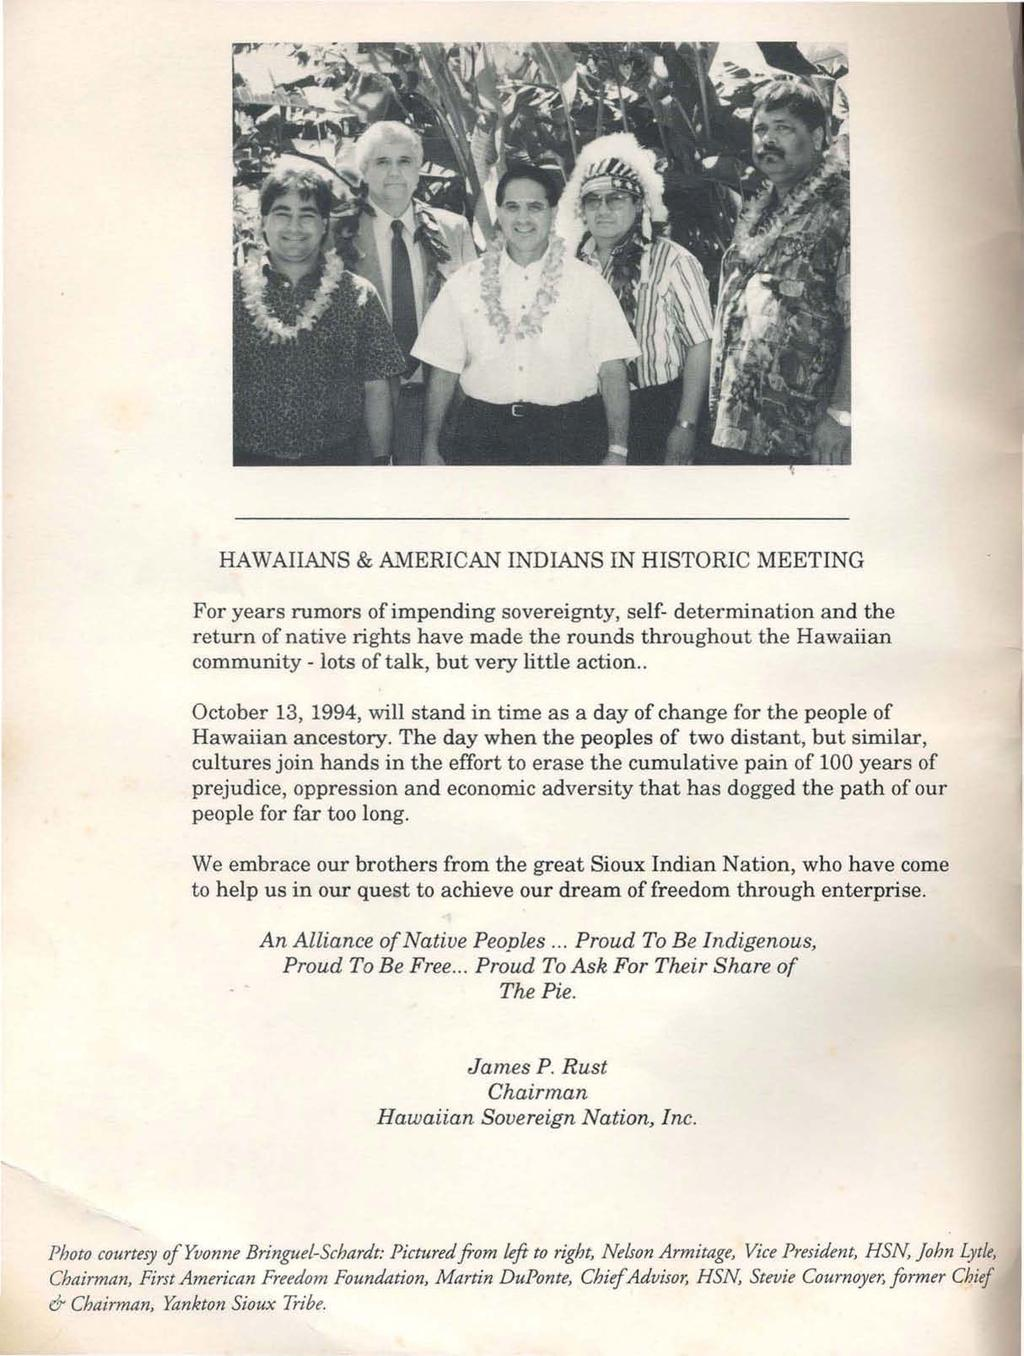 HAWAIIANS & k\1erican INDIANS IN HISTORIC MEETING For years rumors of impending sovereignty, self- determination and the return of native rights have made the rounds throughout the Hawaiian community